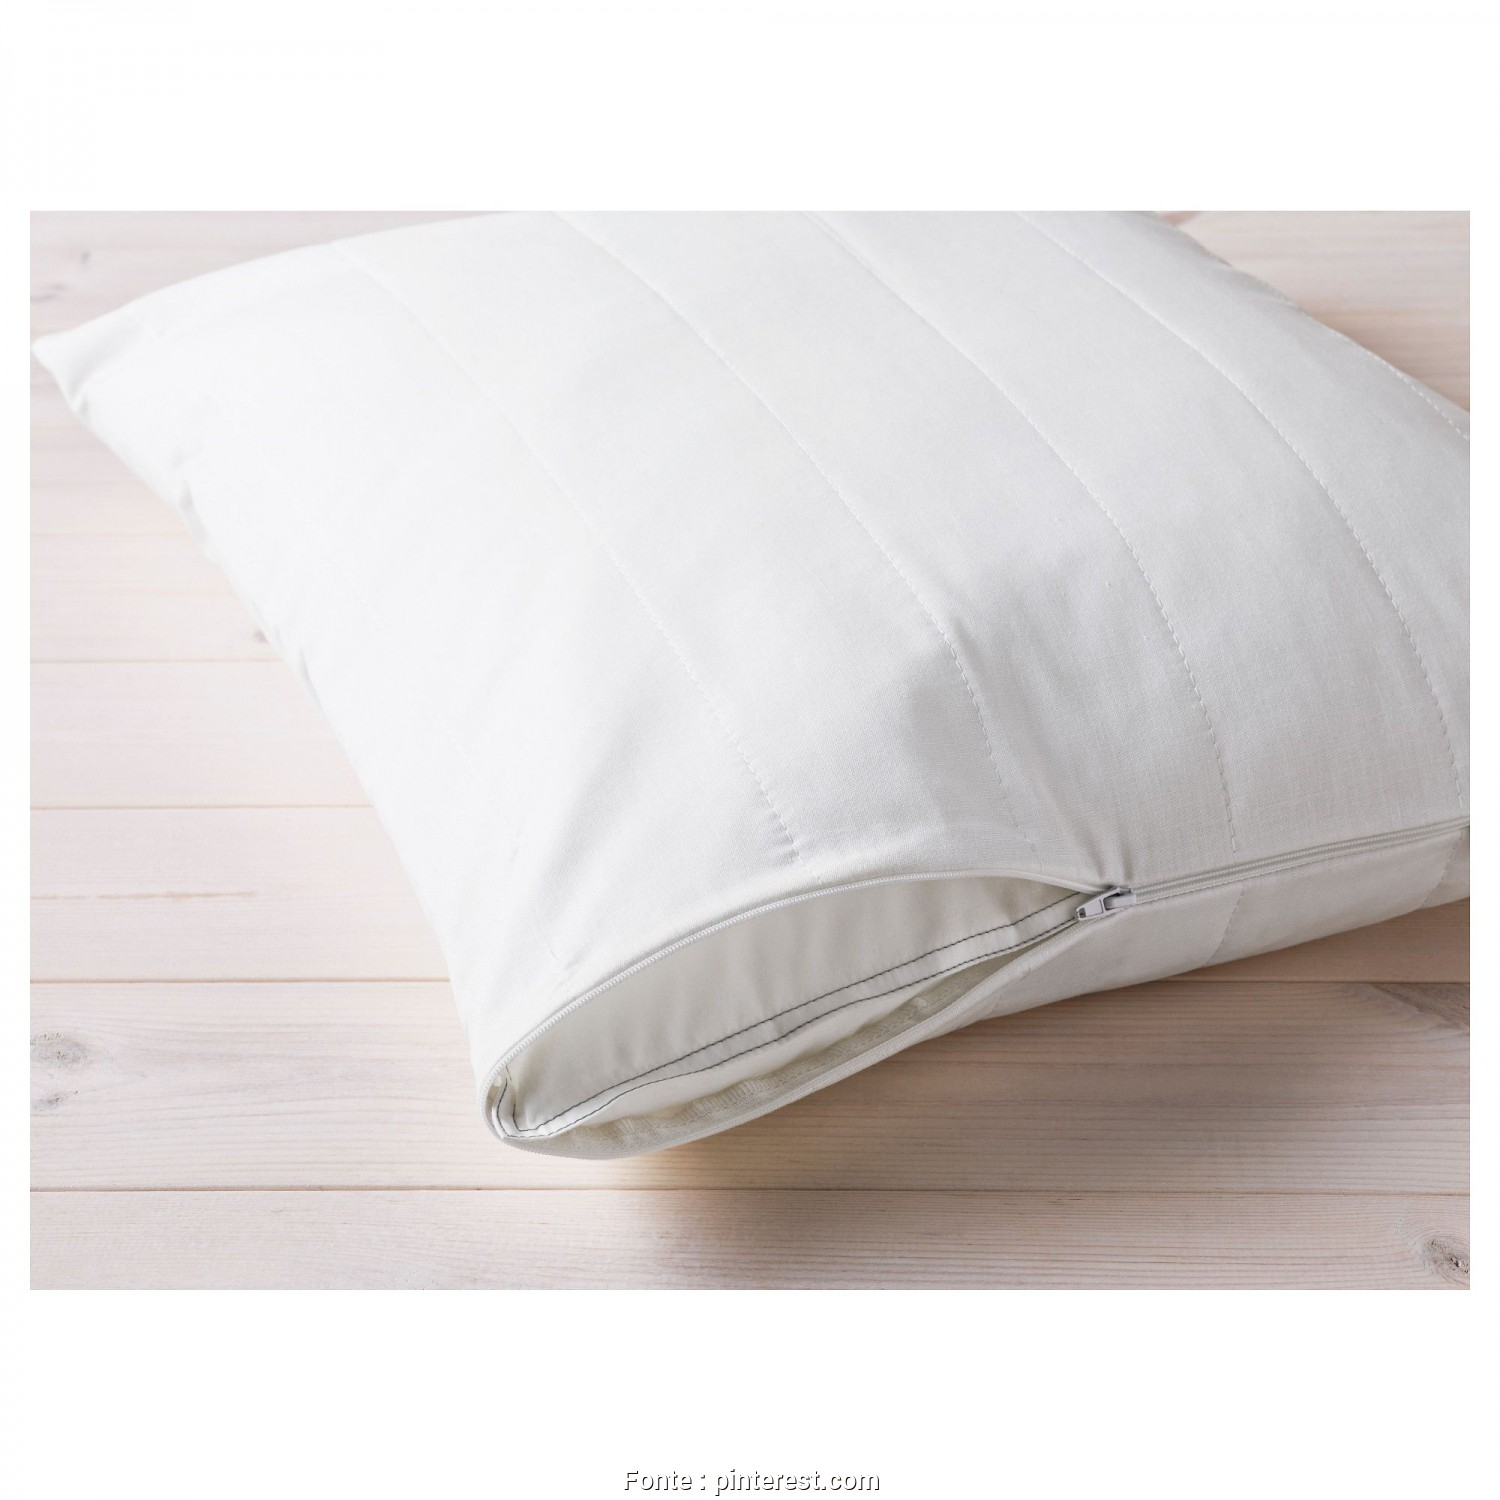 Ikea Cuscino Knavel, Sbalorditivo IKEA, ÄNGSVIDE, Pillow Protector, , Queen, ,, Can Prolong, Life Of Your Pillow, Protect Against Stains, Dirt With A Pillow Protector